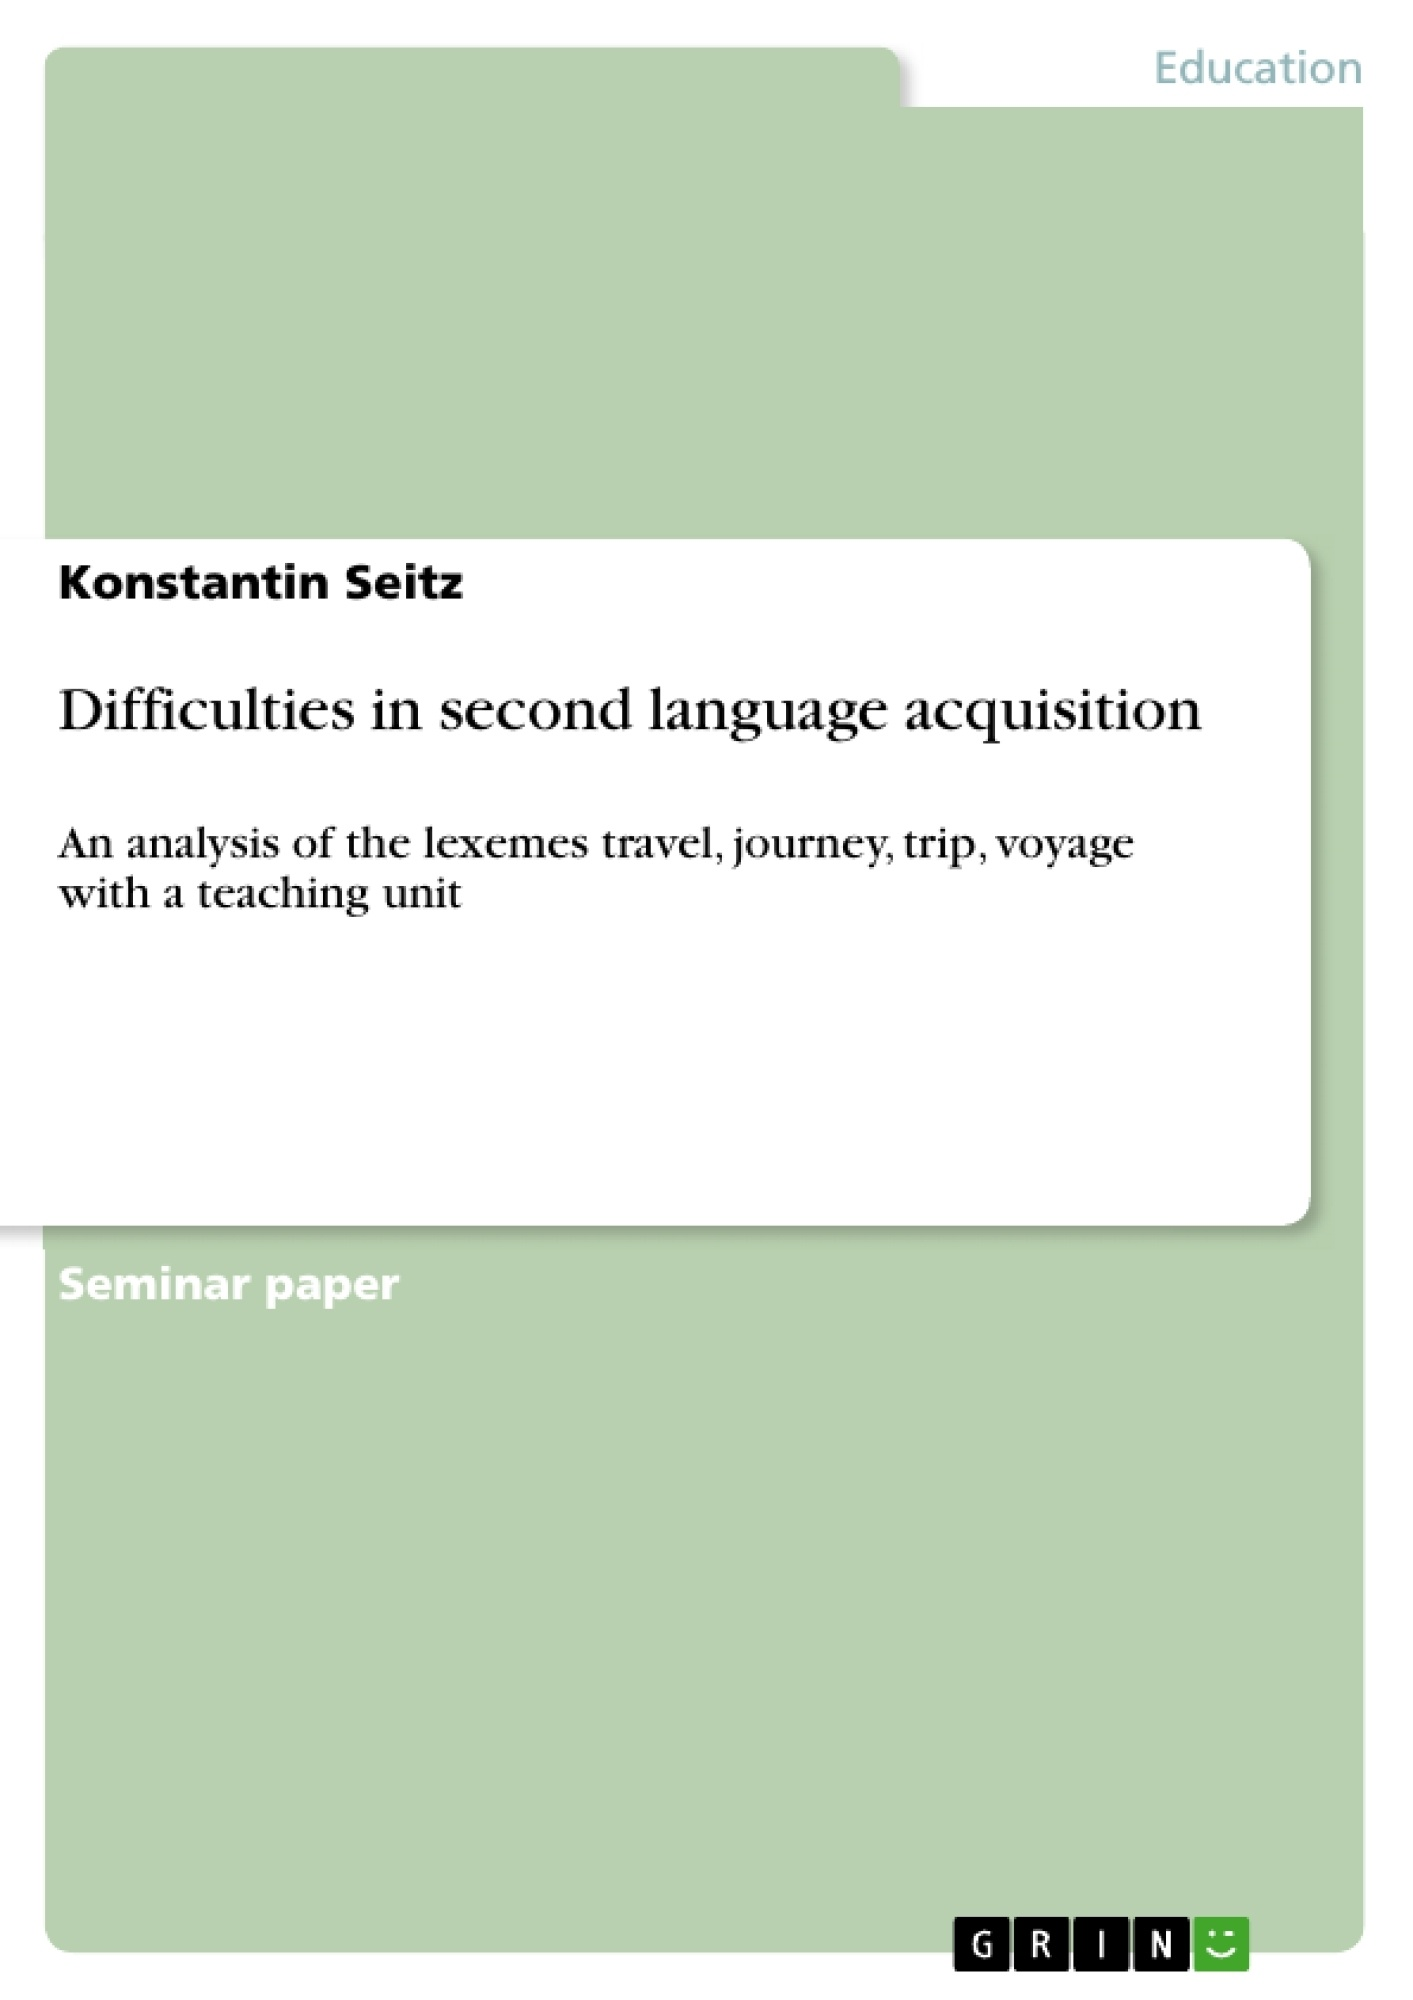 Title: Difficulties in second language acquisition